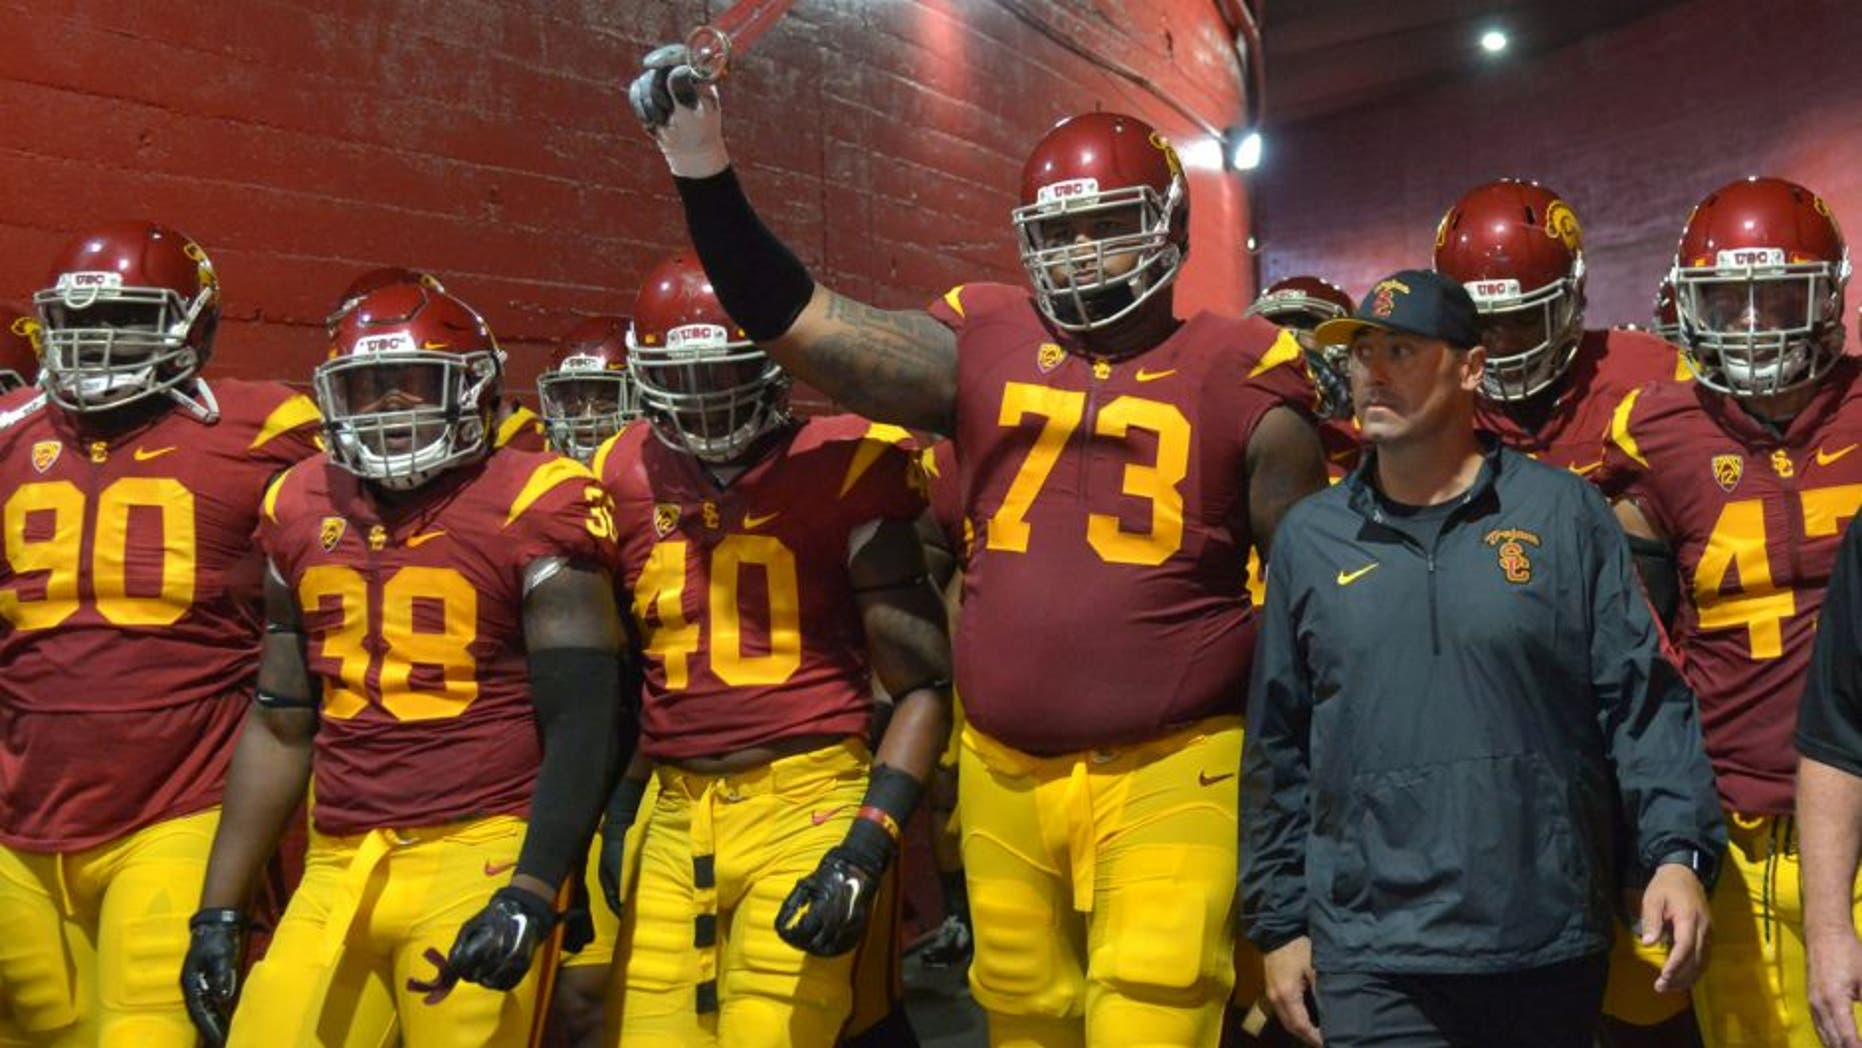 Oct 8, 2015; Los Angeles, CA, USA; Southern California Trojans coach Steve Sarkisian accompanies players onto the field before the game against the Washington Huskies at Los Angeles Memorial Coliseum. Mandatory Credit: Kirby Lee-USA TODAY Sports